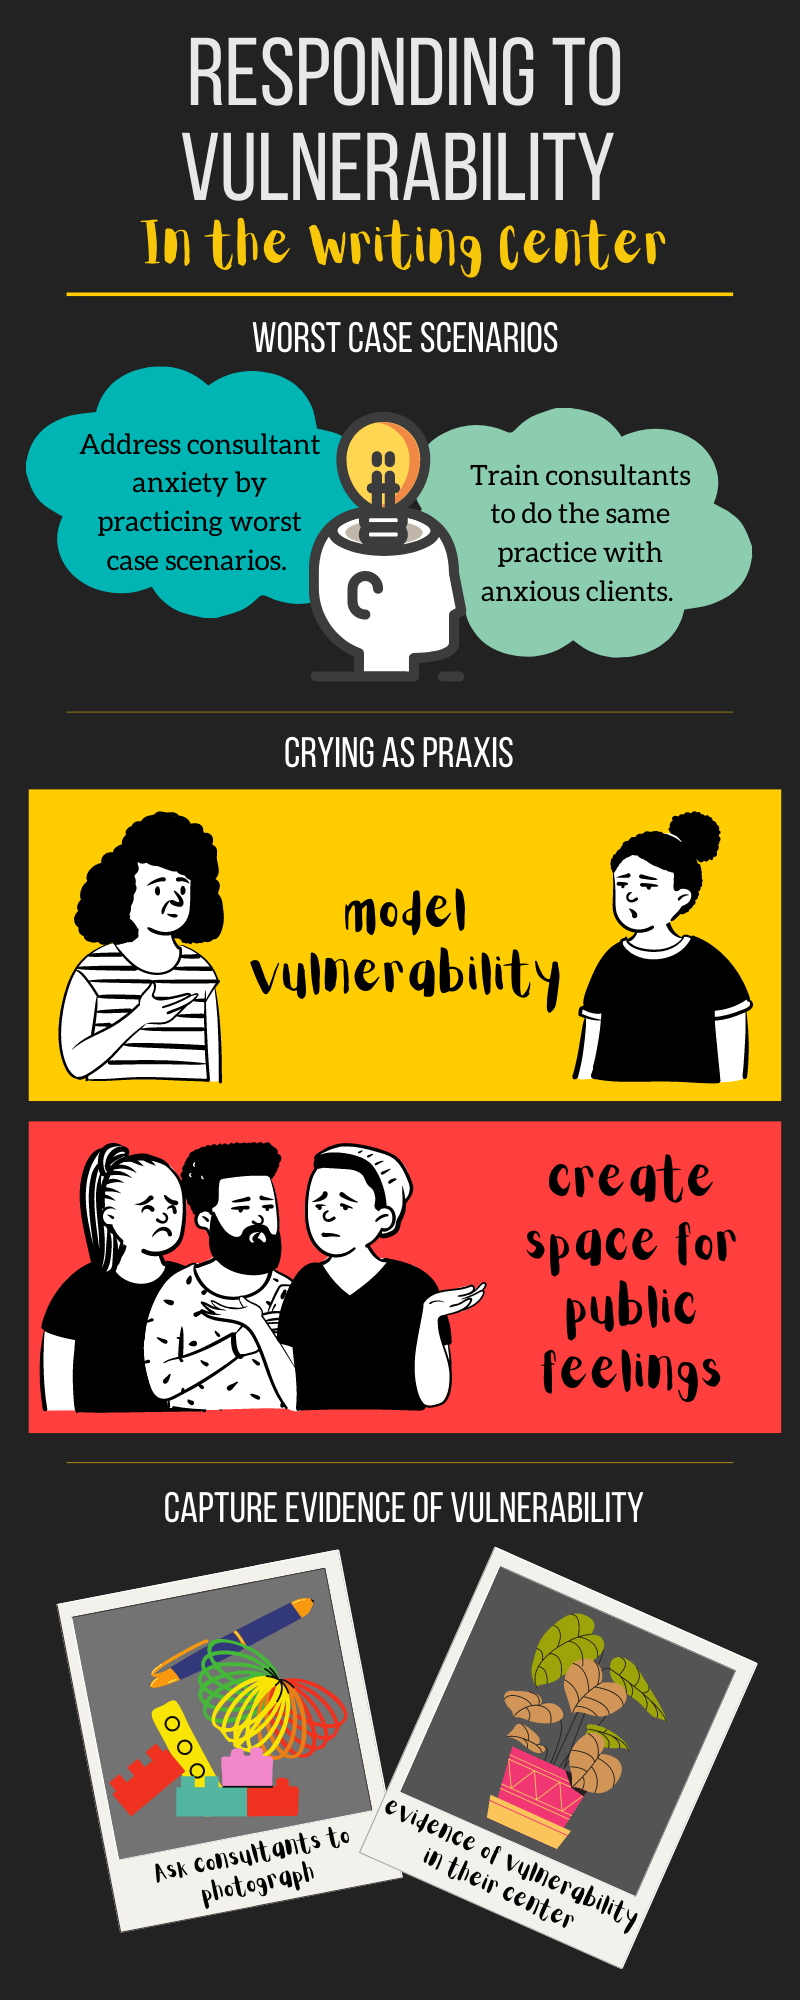 Infographic with three steps to respond to vulnerability: model vulnerability, create space for public feelings, and capture evidence of vulnerability.